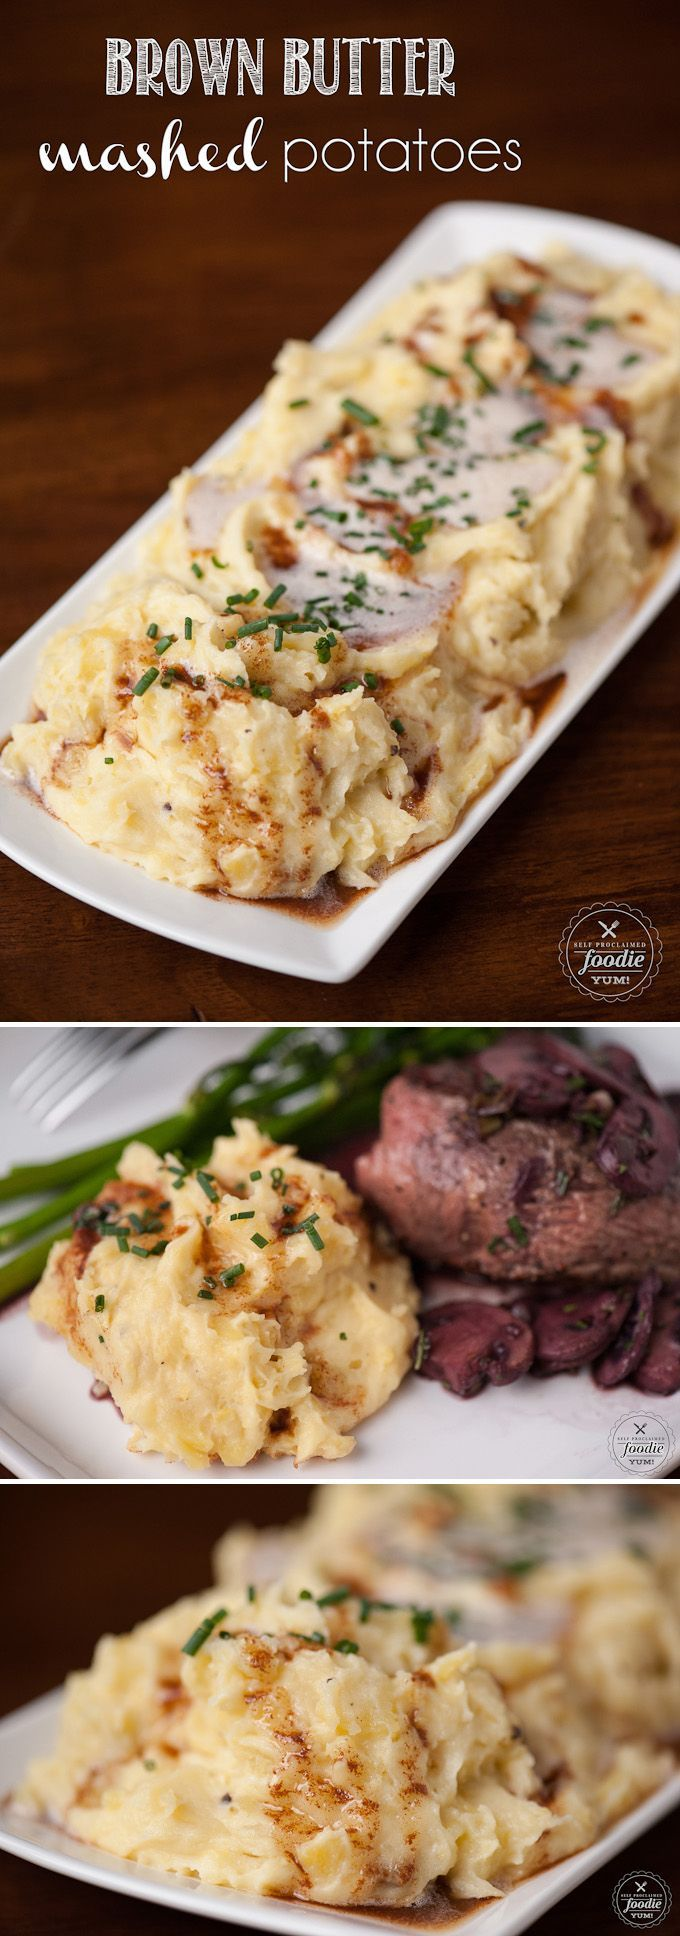 Brown Butter Mashed Potatoes Romantic Dinner Recipesromantic